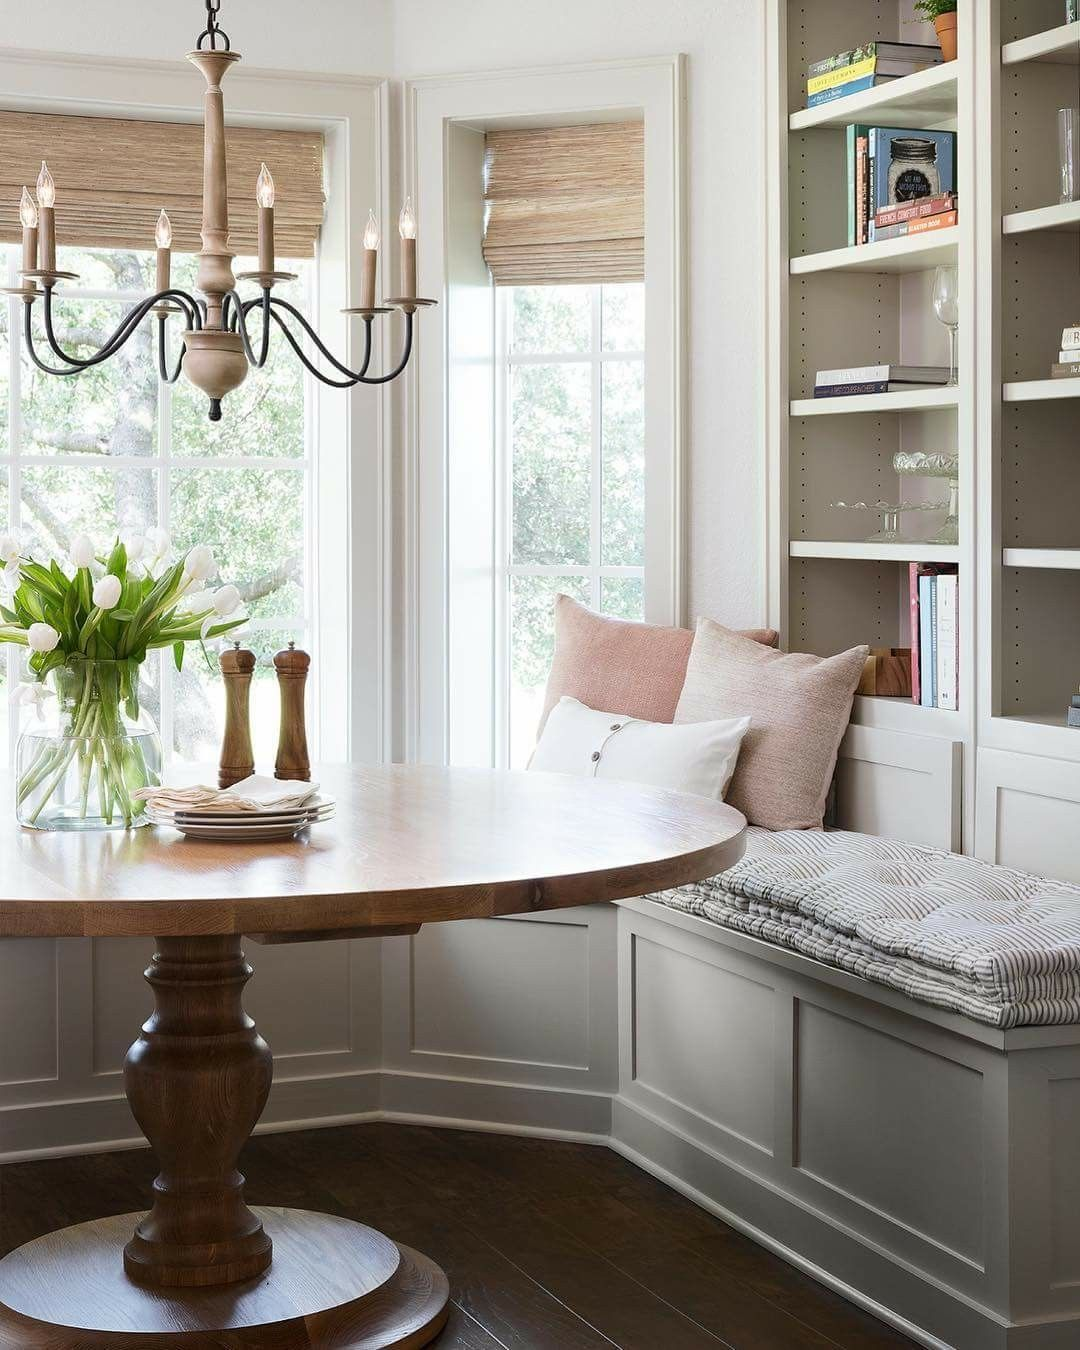 Nook Dining Room Ideas: Nook With Bookcases, Seating, And Table In 2019